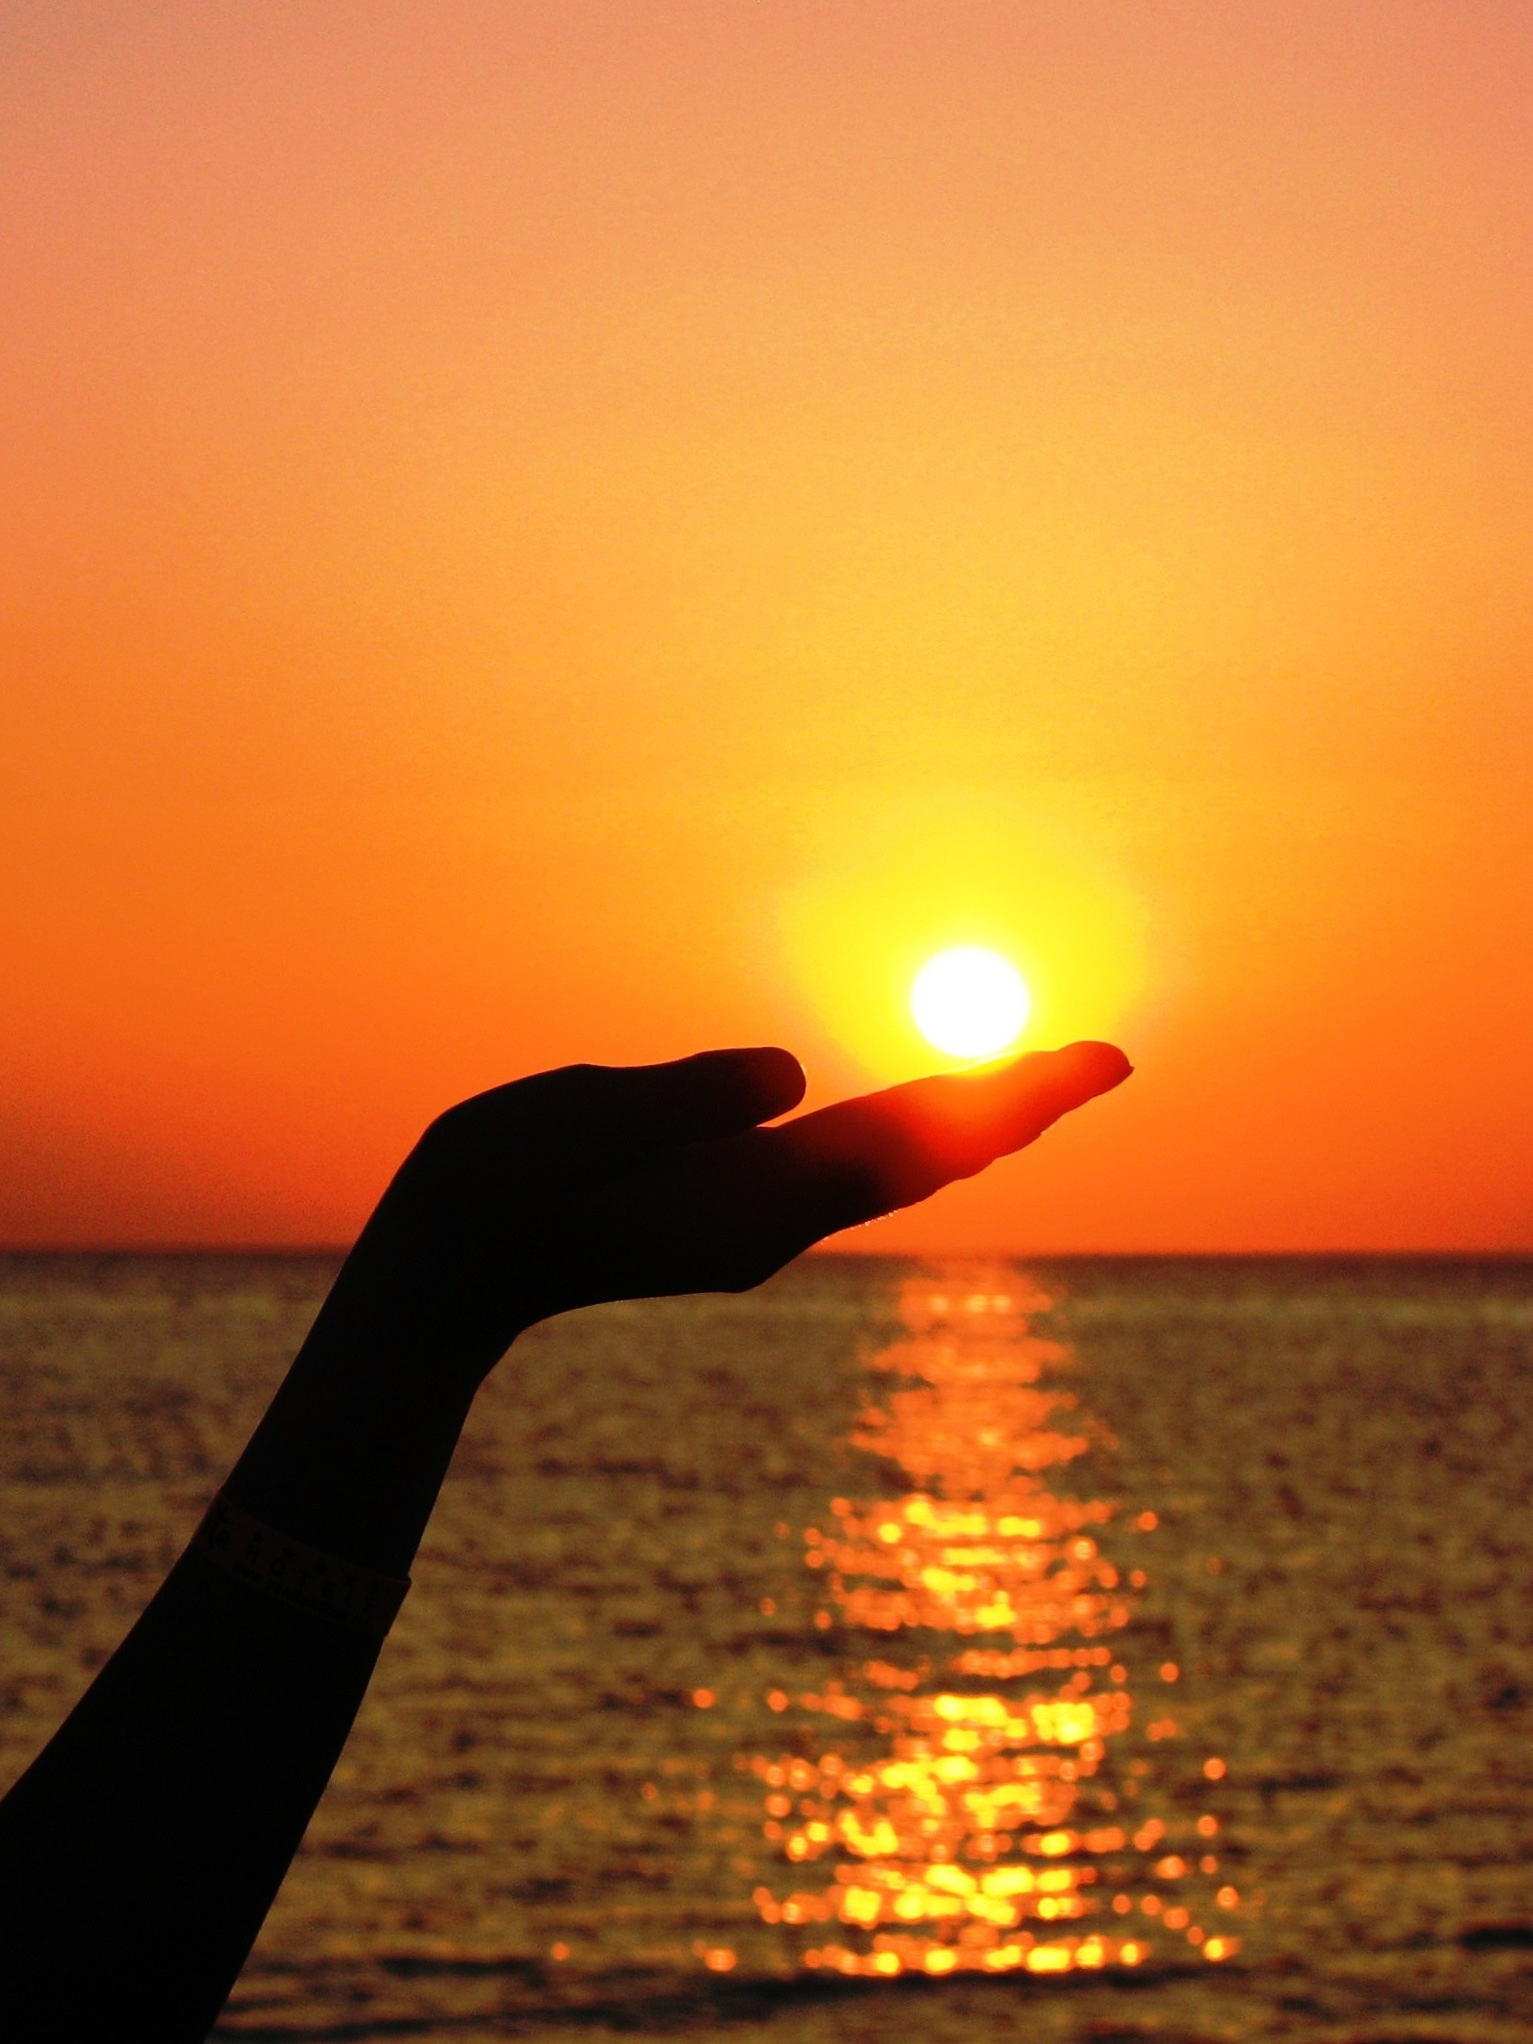 hand-sea-ocean-horizon-light-sun-sunrise-sunset-sunlight-morning-dawn-summer-dusk-evening-finger-reflection-red-afterglow-embers-956028